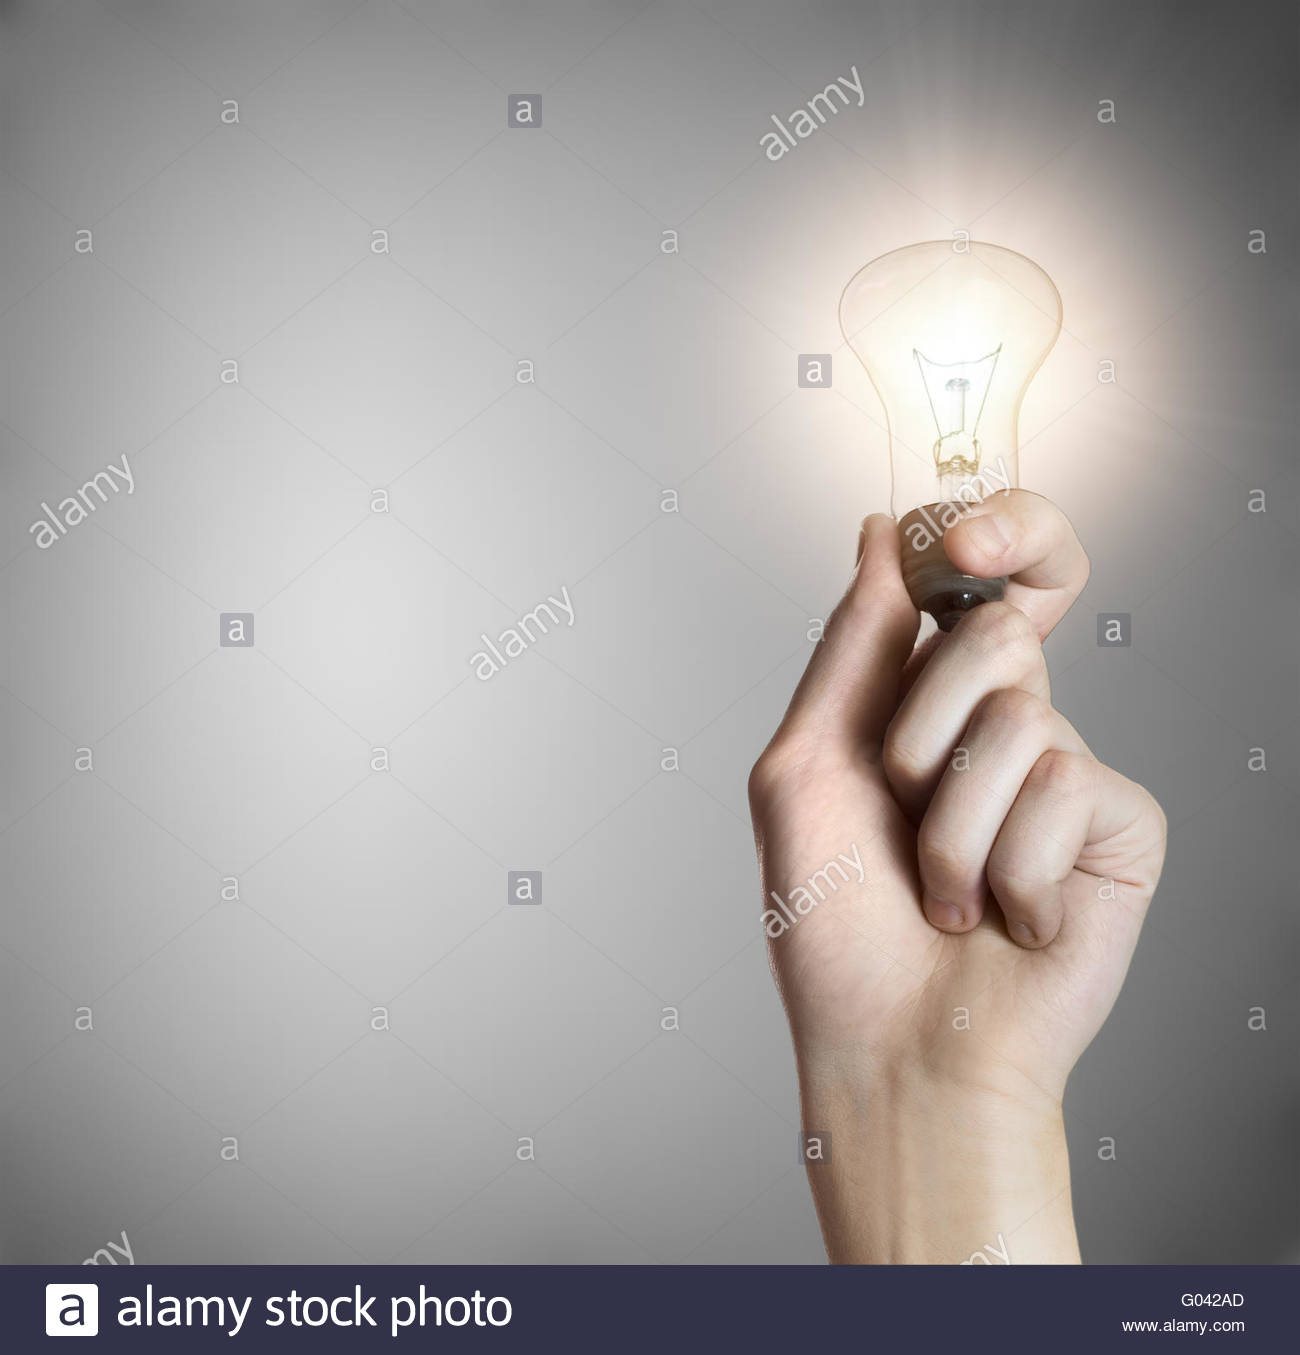 Glowing lightbulb in a hand on gray background with copyspace - Stock Image